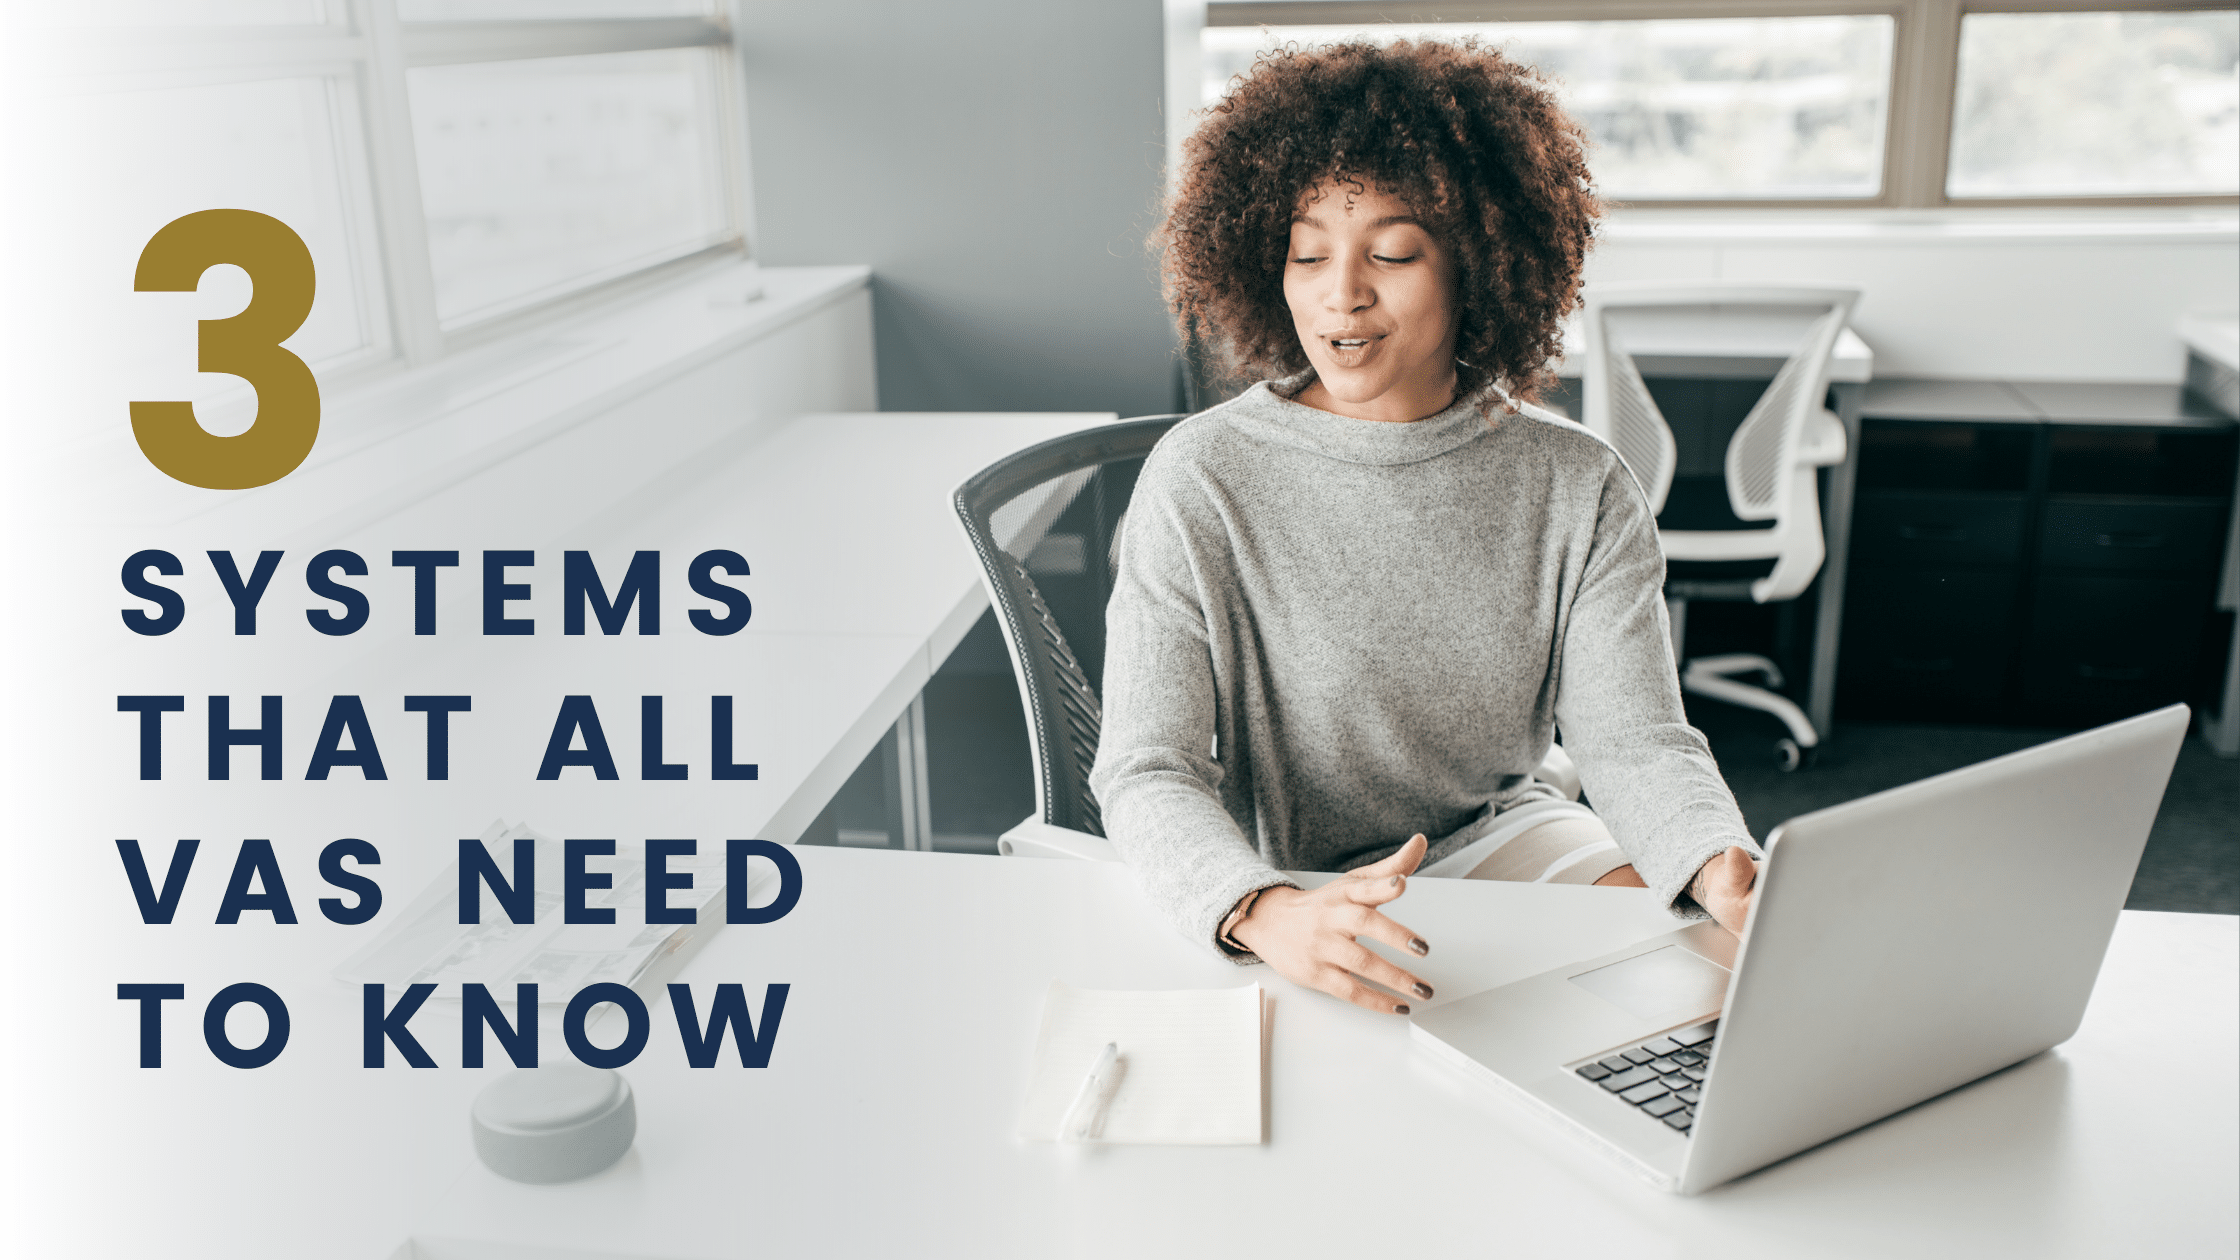 3 Systems That All VAs Need To Know